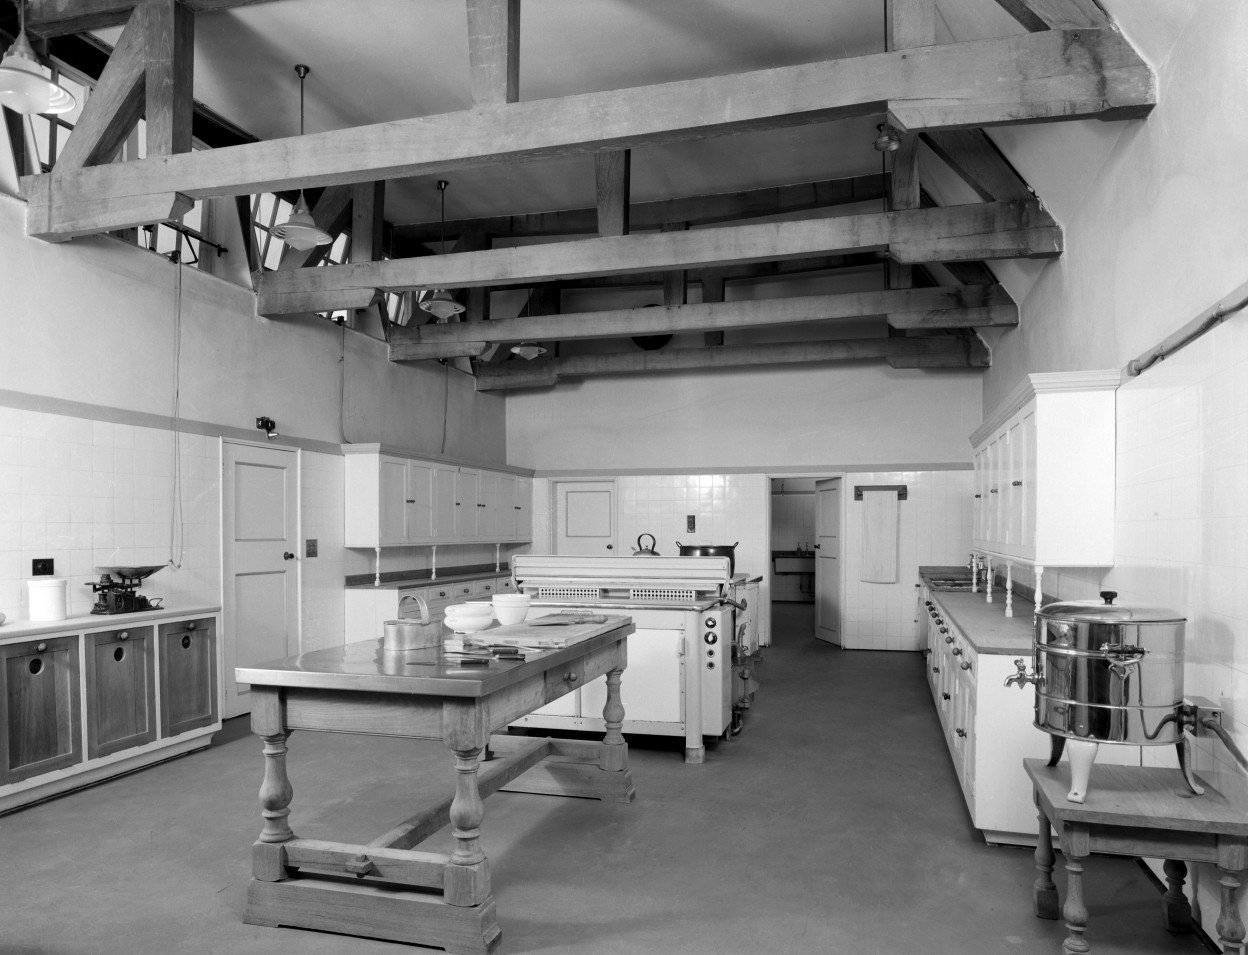 The kitchen at Middleton Park. The house was designed by Sir Edwin Lutyens and his son Robert Lutyens in 1938 for the 9th Earl of Jersey. Not Used CL 12/07/1946